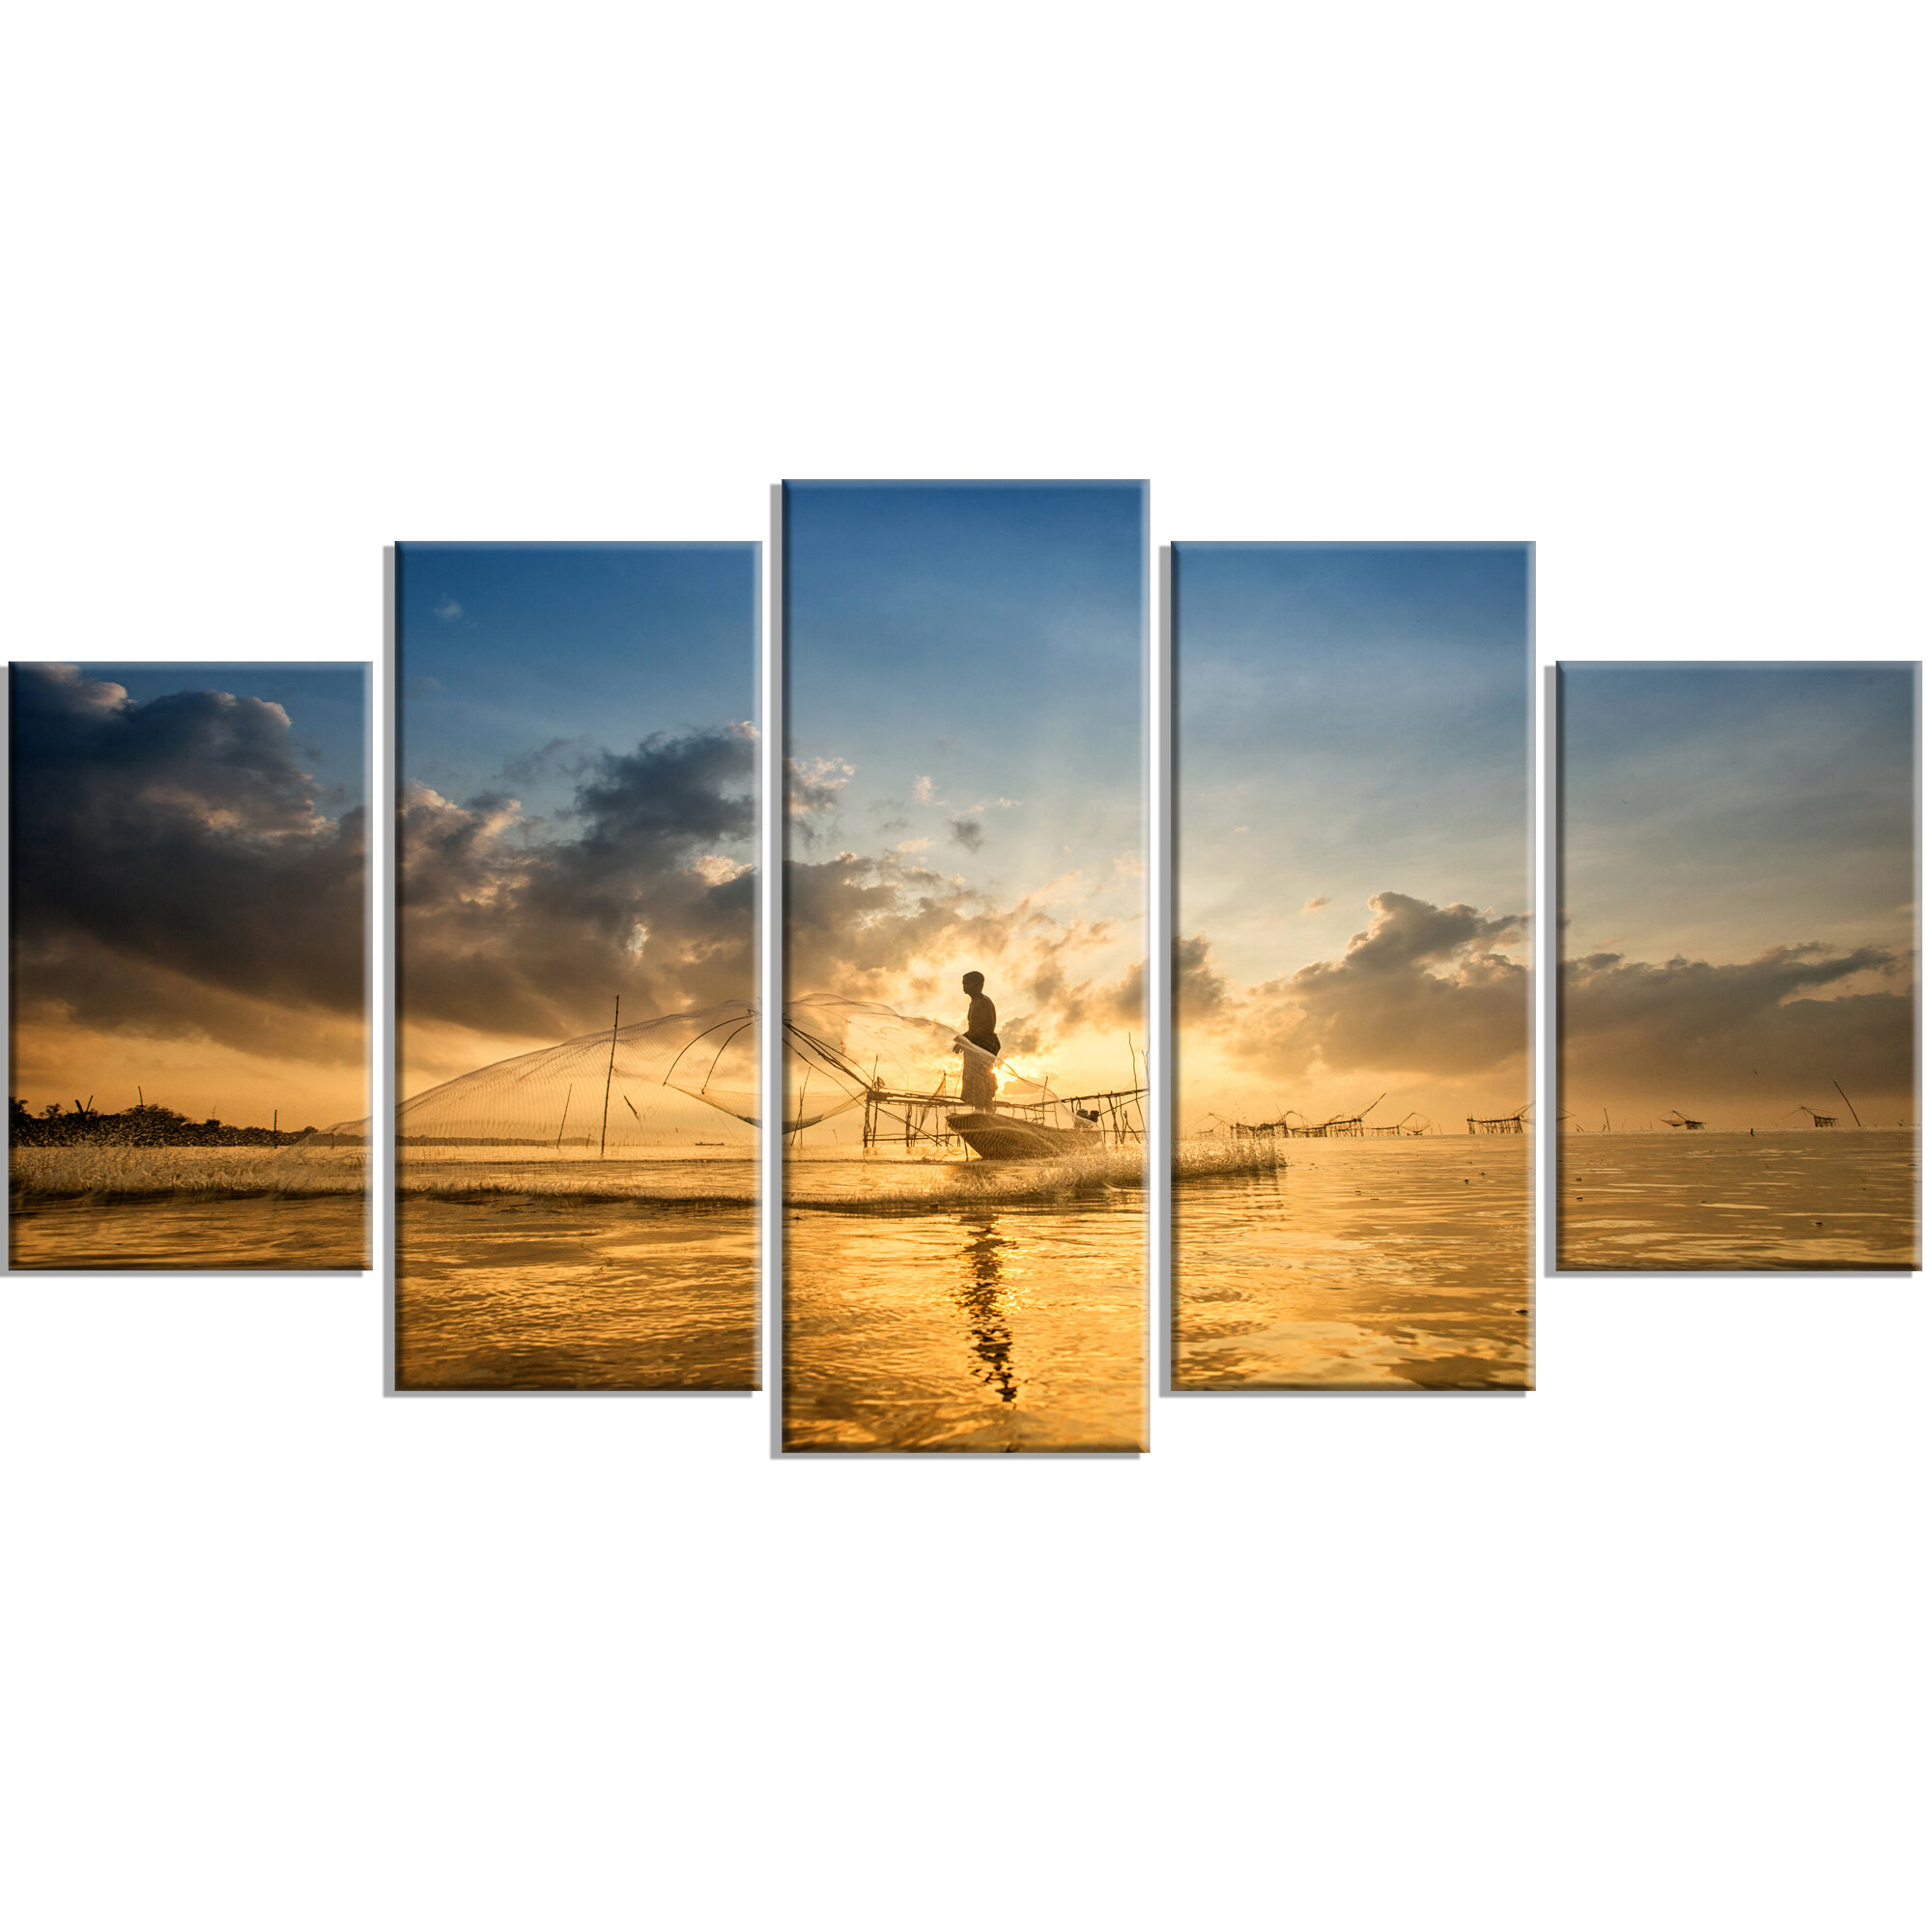 Designart Pakpra With Fisherman At Sunrise Photographic Print Multi Piece Image On Canvas Wayfair